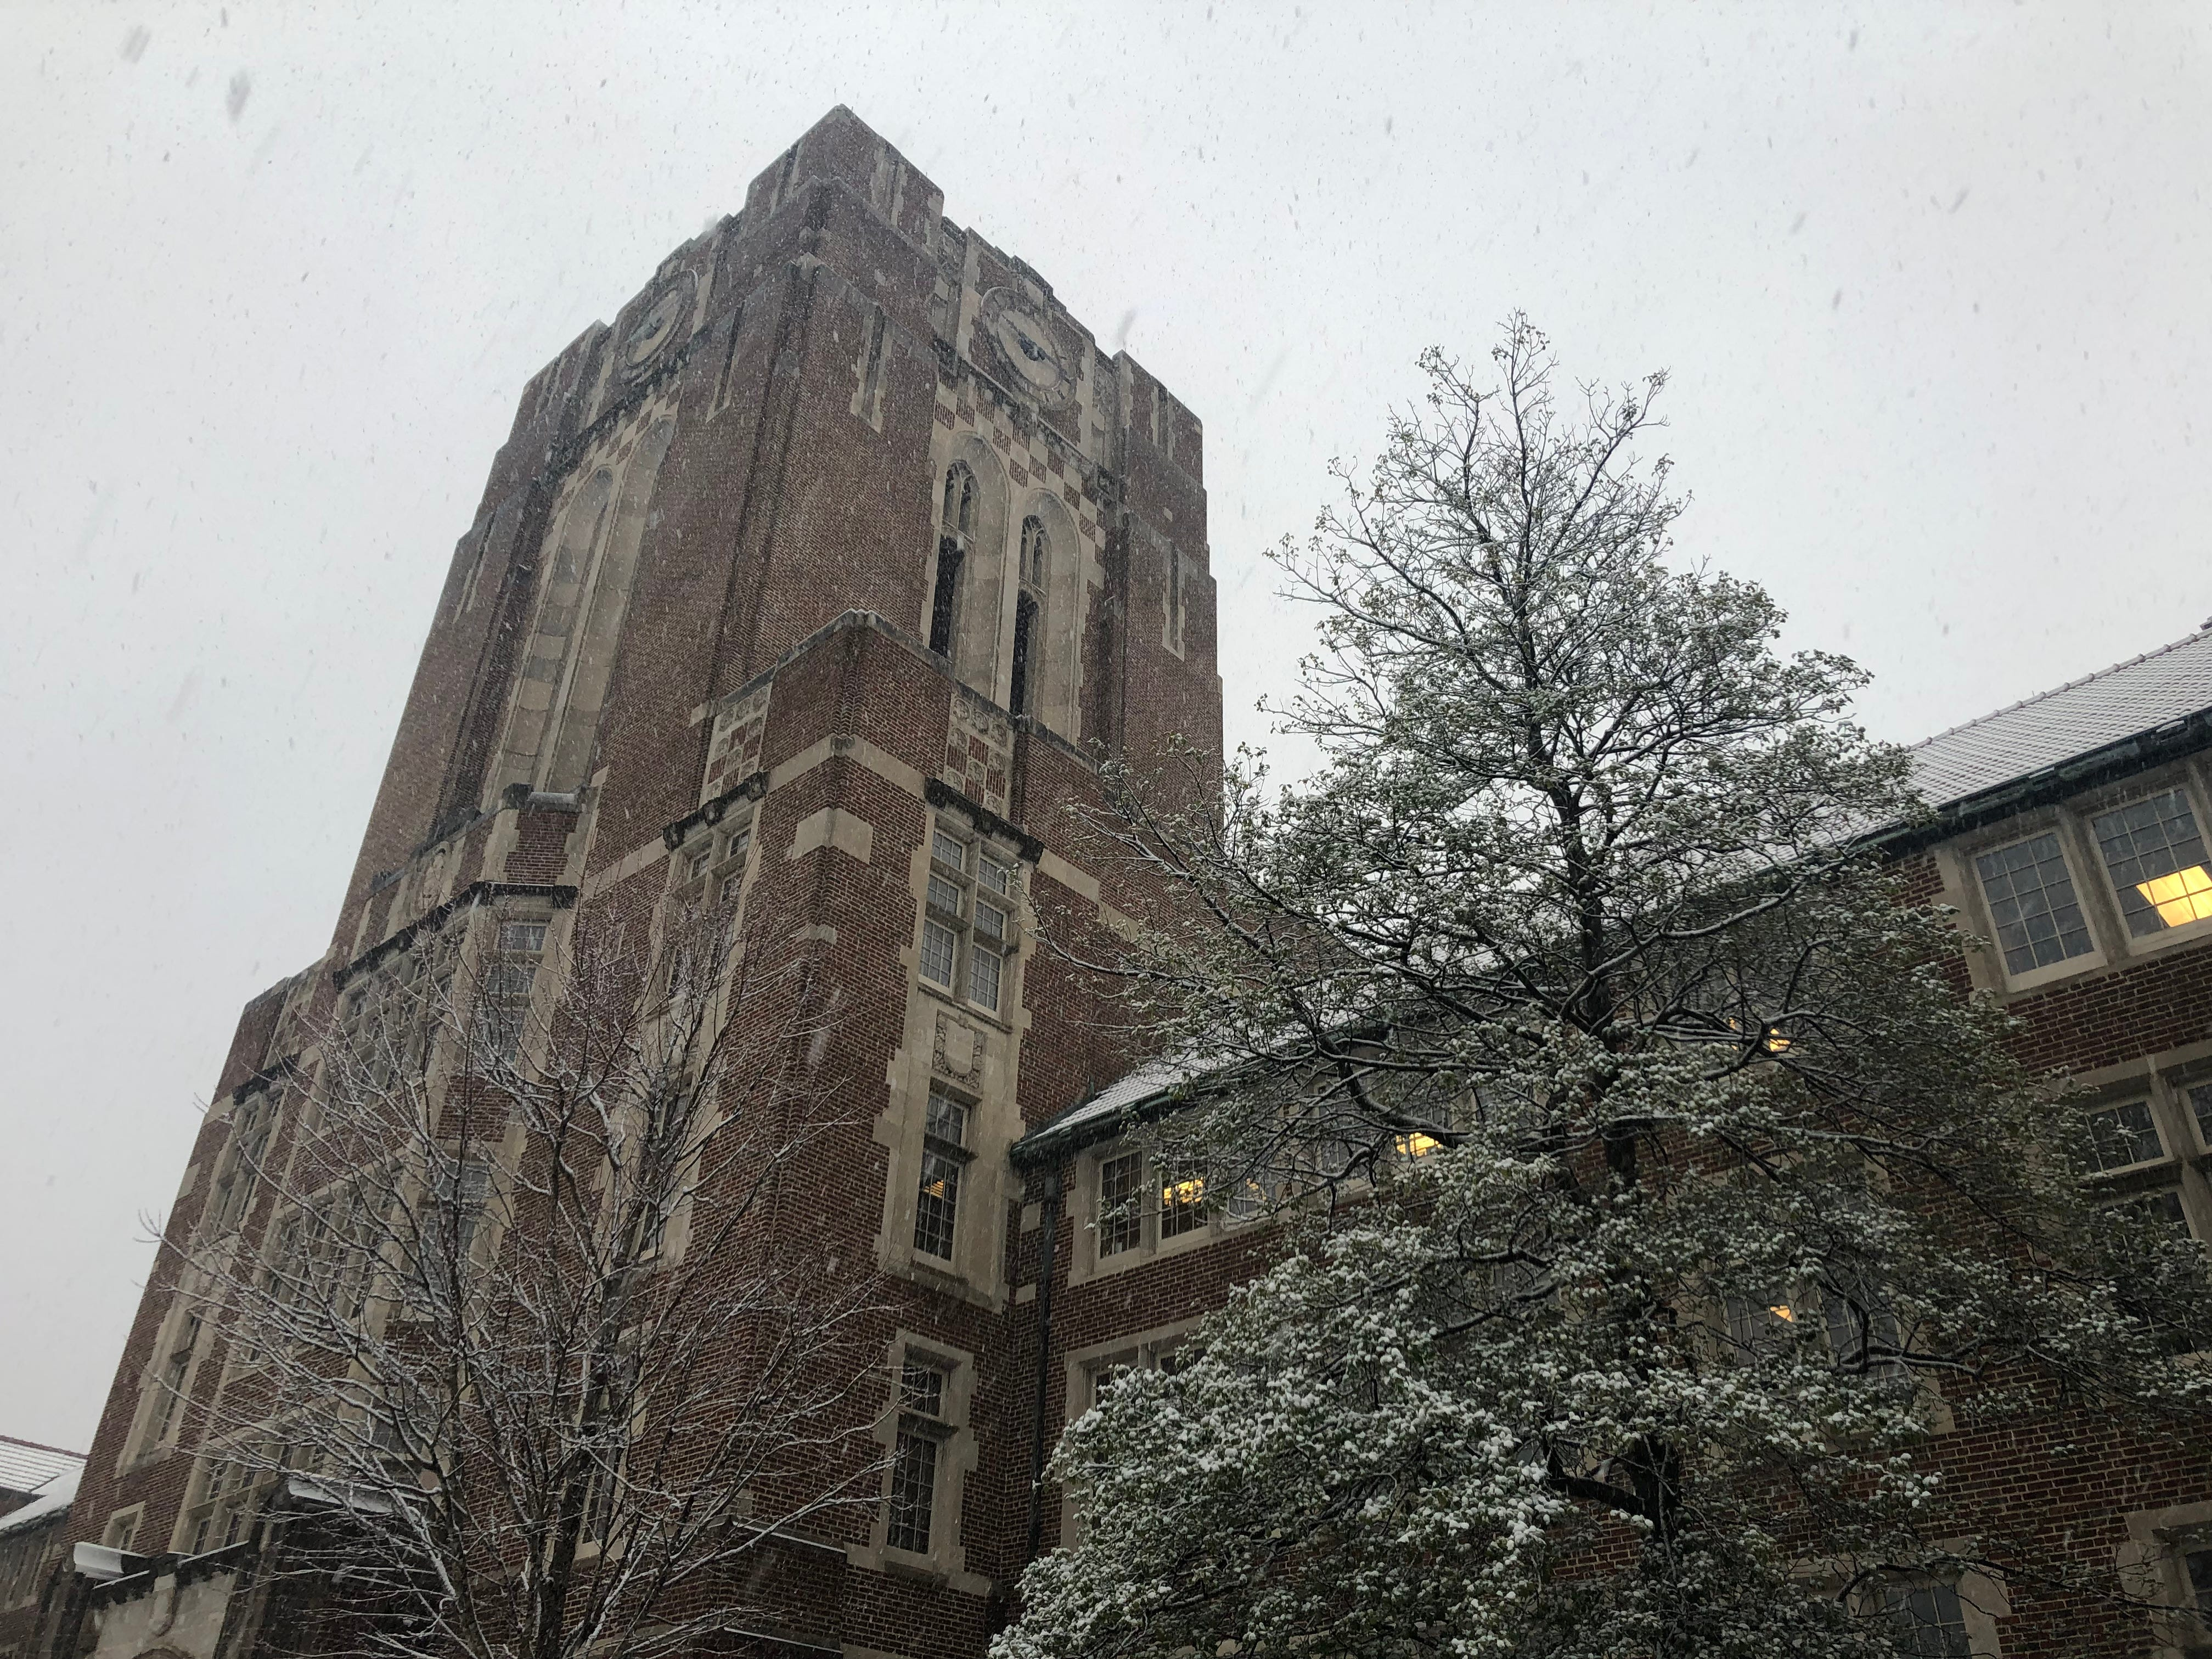 Snow falls at Ayres Hall at the University of Tennessee, Knoxville on Tuesday, Jan. 29, 2019.